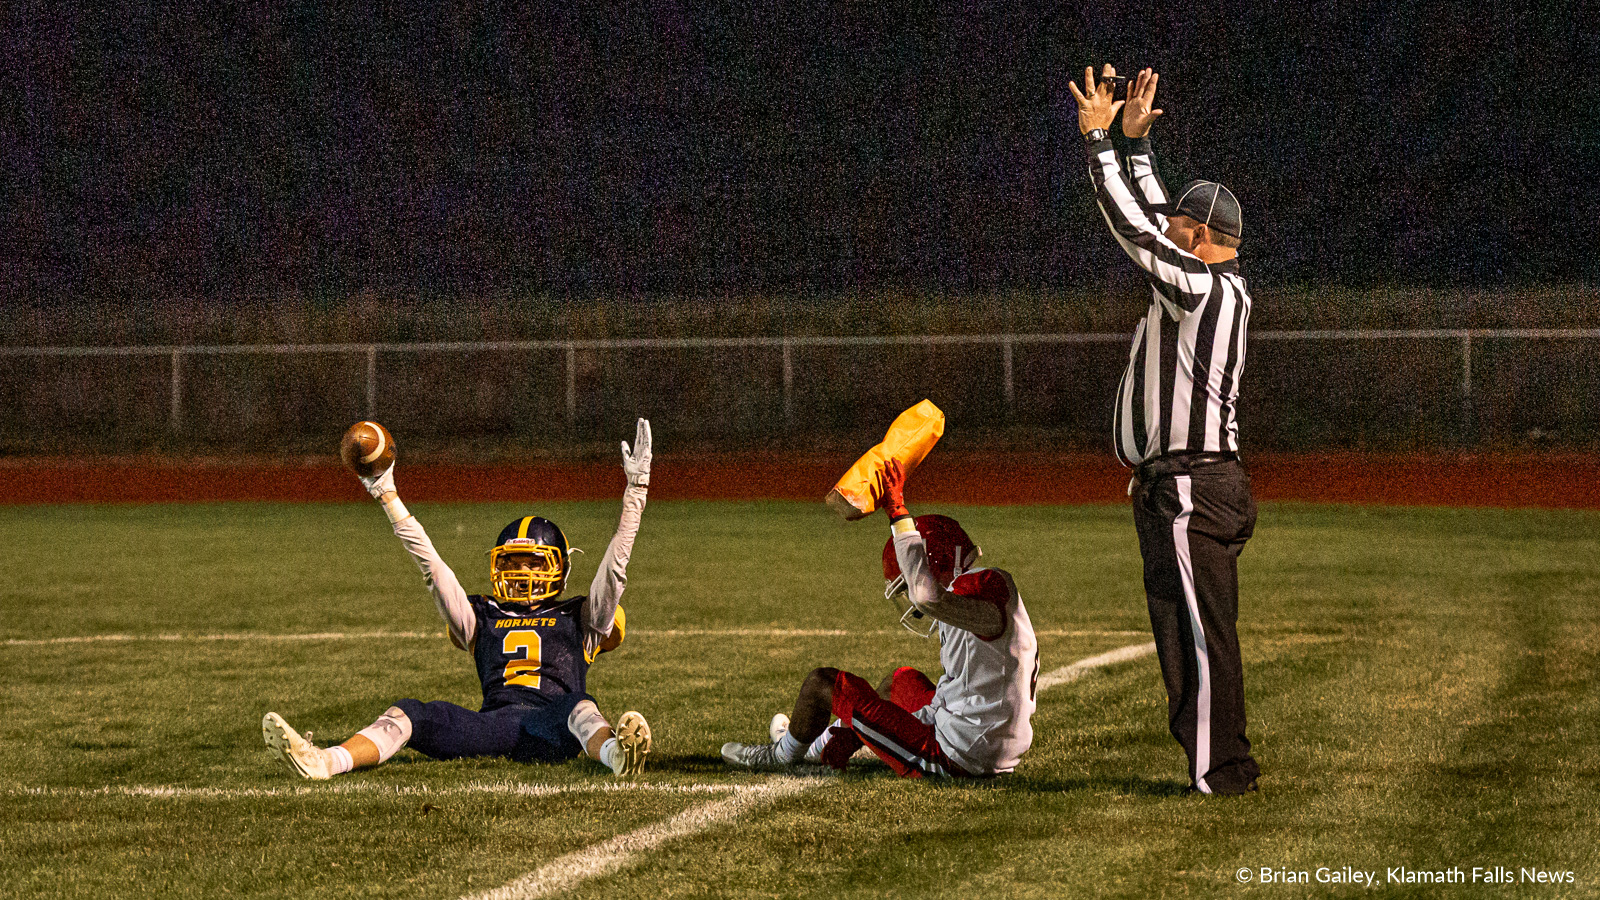 Henley's wide receiver #2 Gavin Graham celebrates with his arms in the air following a touchdown in the annual cross-town rival football game with Klamath Union. Henley defeated Klamath Union 35-6, Saturday night. September 27, 2019 (Image: Brian Gailey, Klamath Falls News)